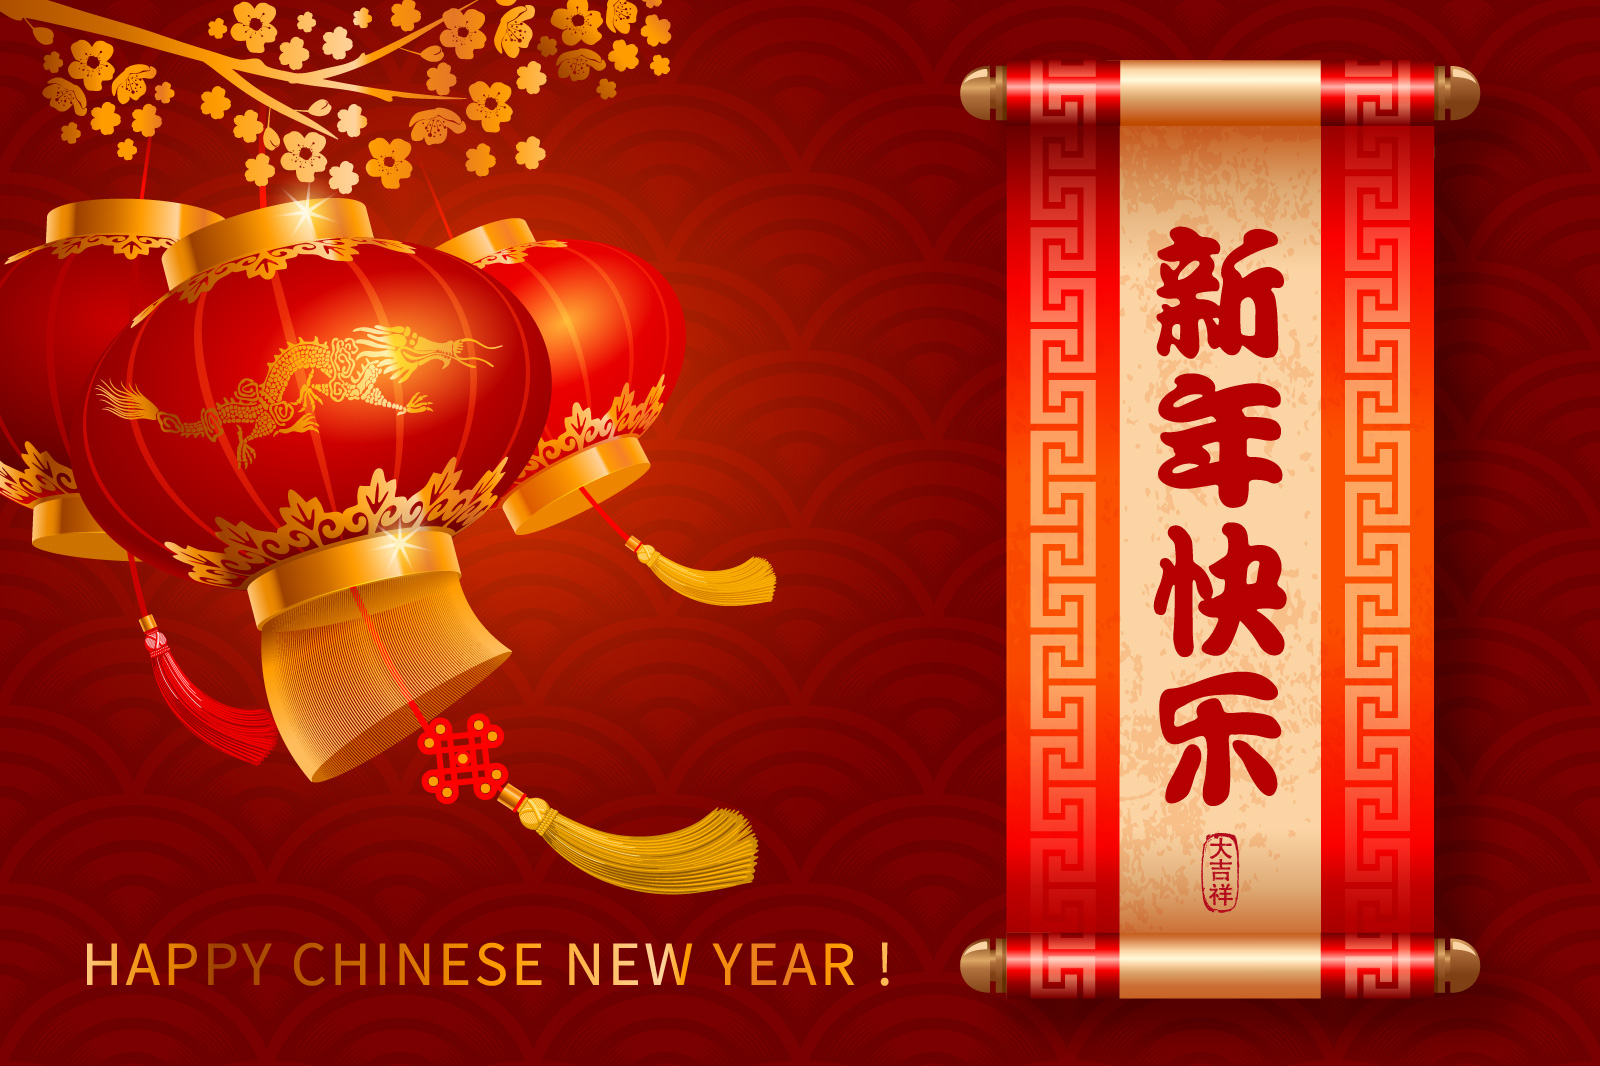 happy chinese new year theme poster design illustrations vectors esp free download